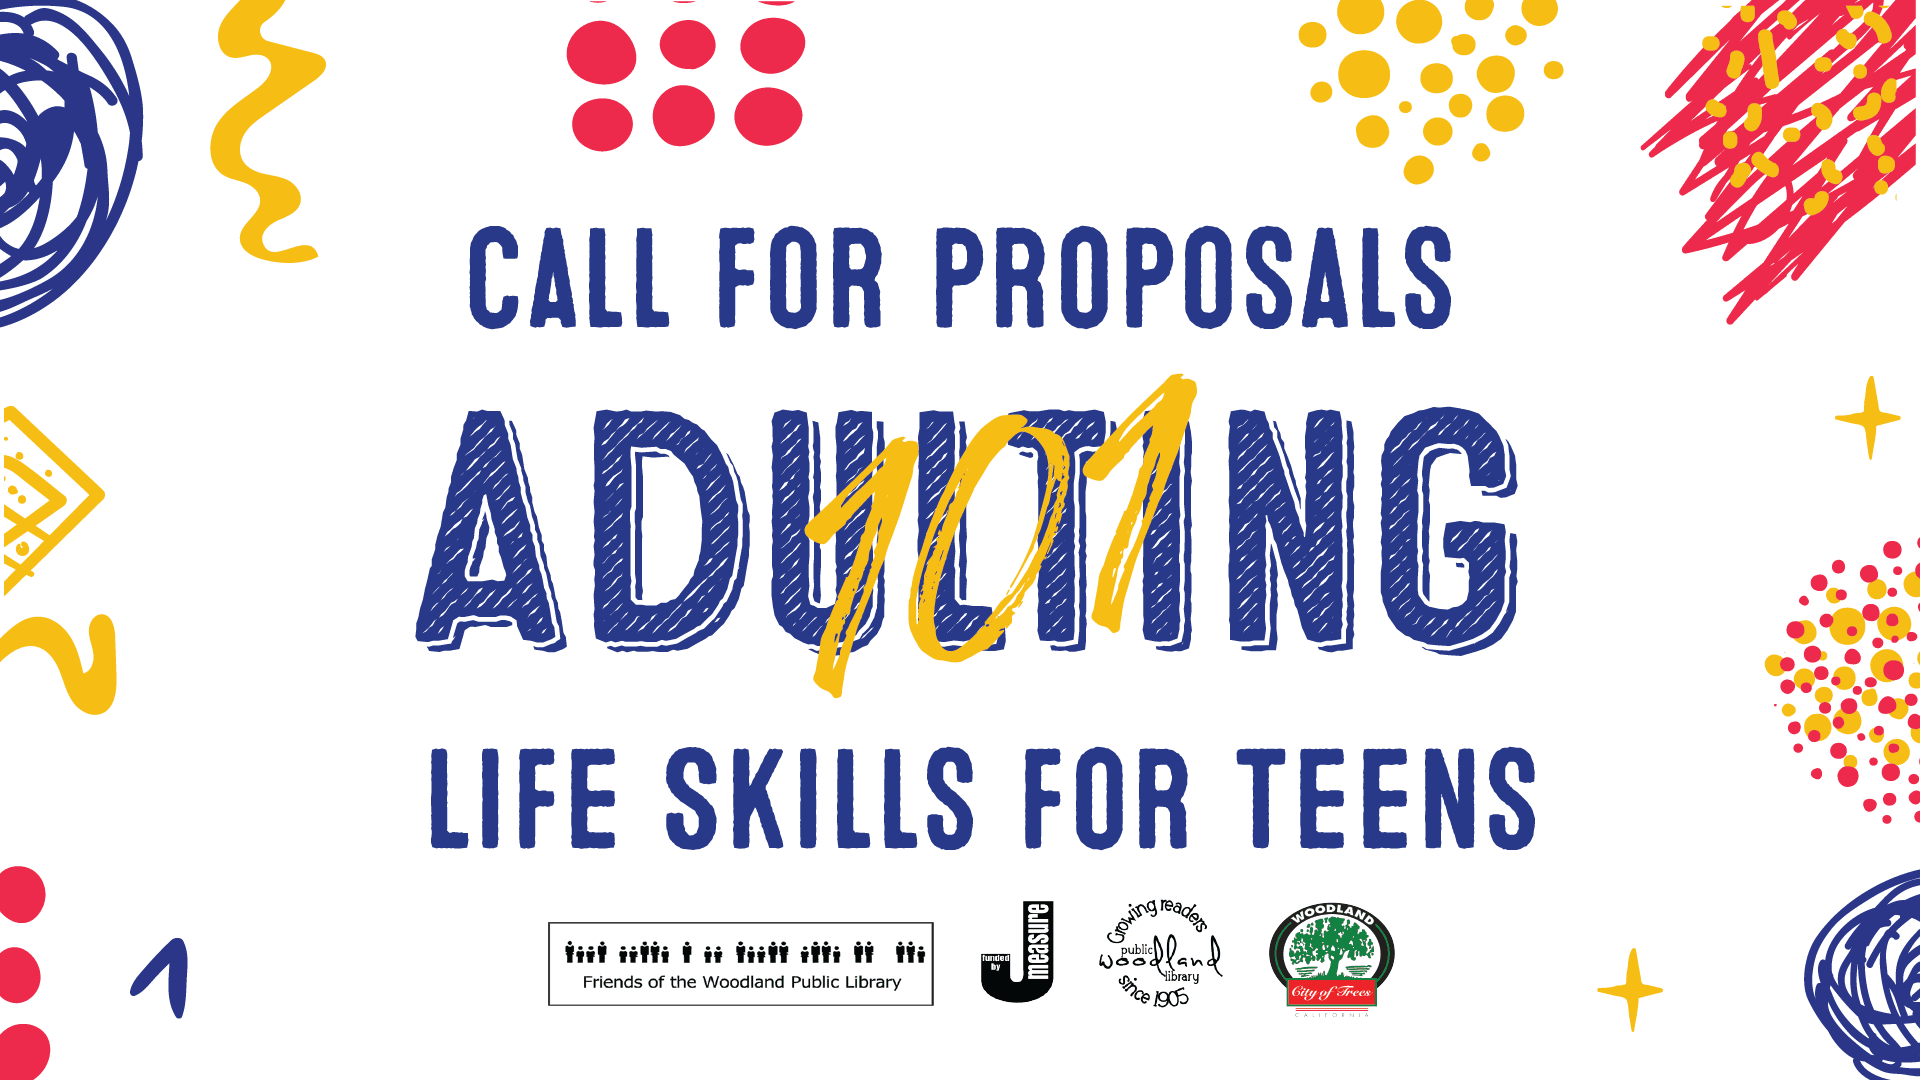 Adulting 101 Call for Proposals